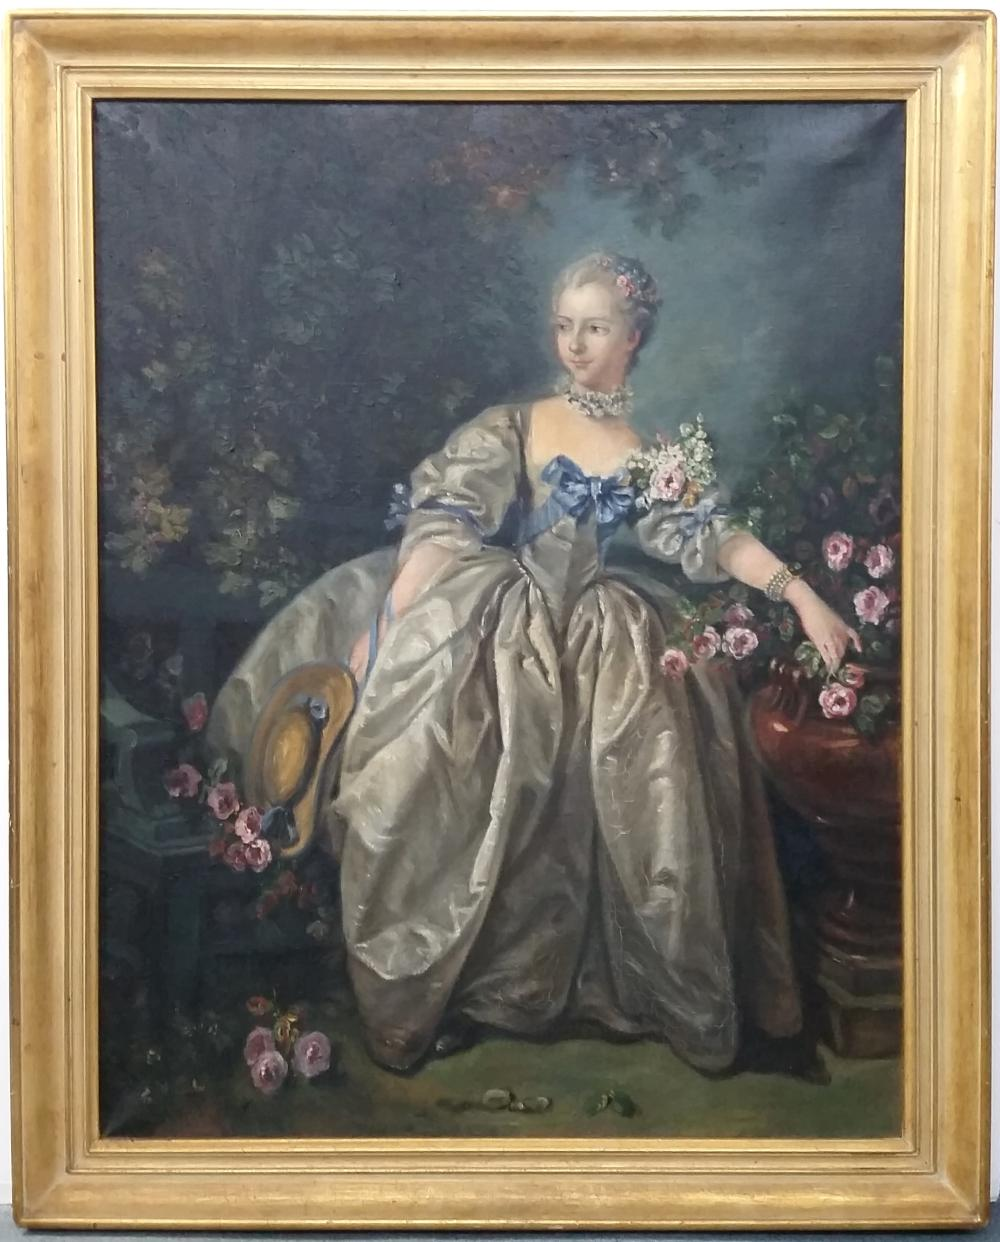 Painting Madame Bergeret by Thelma DeAtley after Boucher French Rococo Portrait